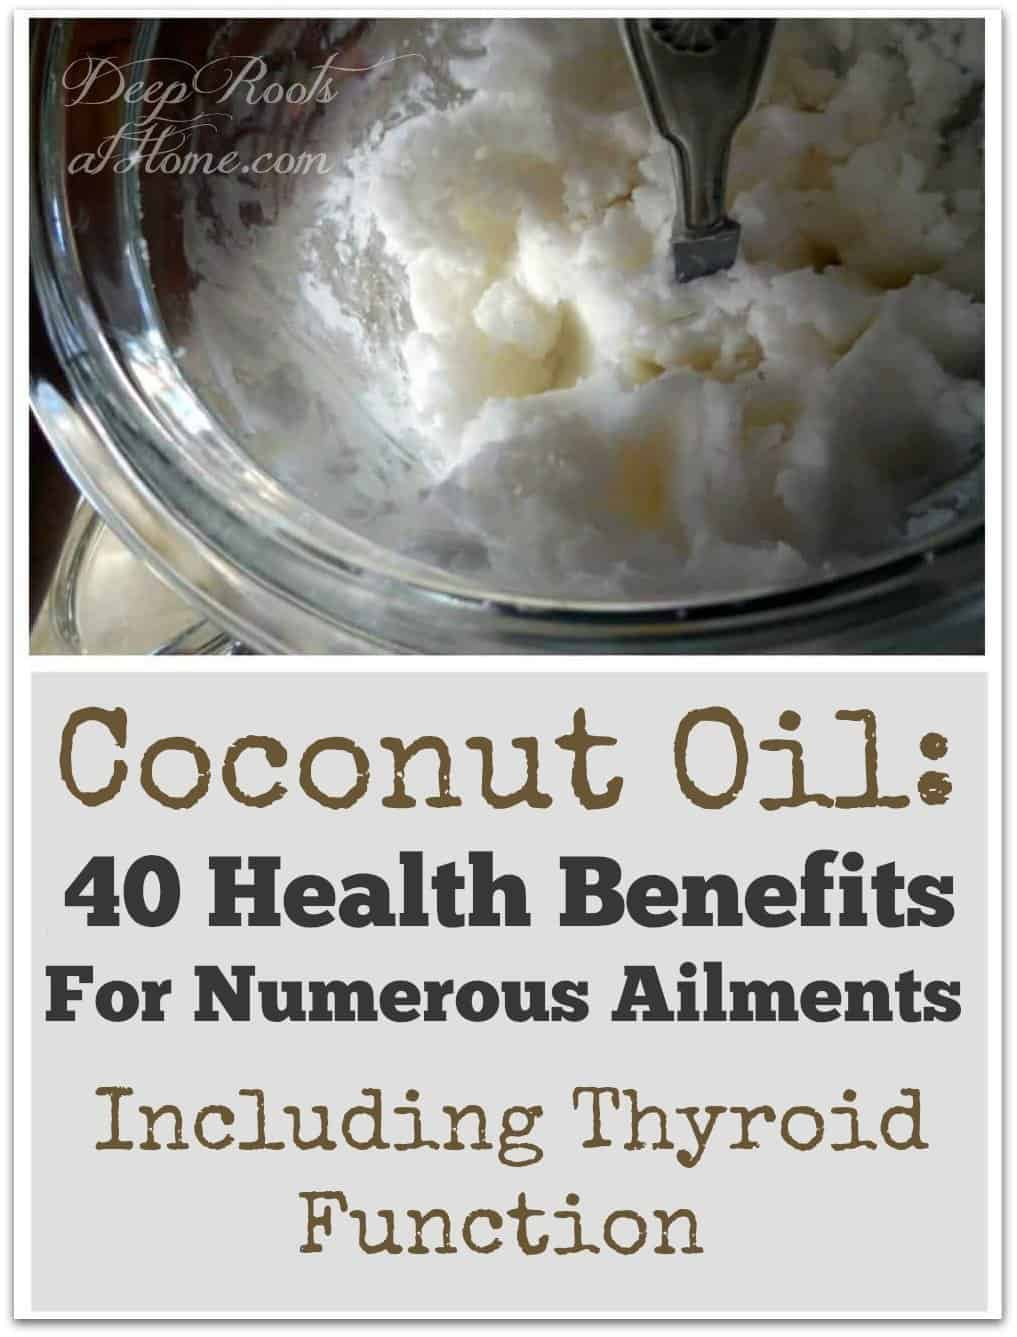 Coconut Oil: 40 Health Benefits For Numerous Ailments Incl. Thyroid Function. A glass tub on pure virgin coconut oil